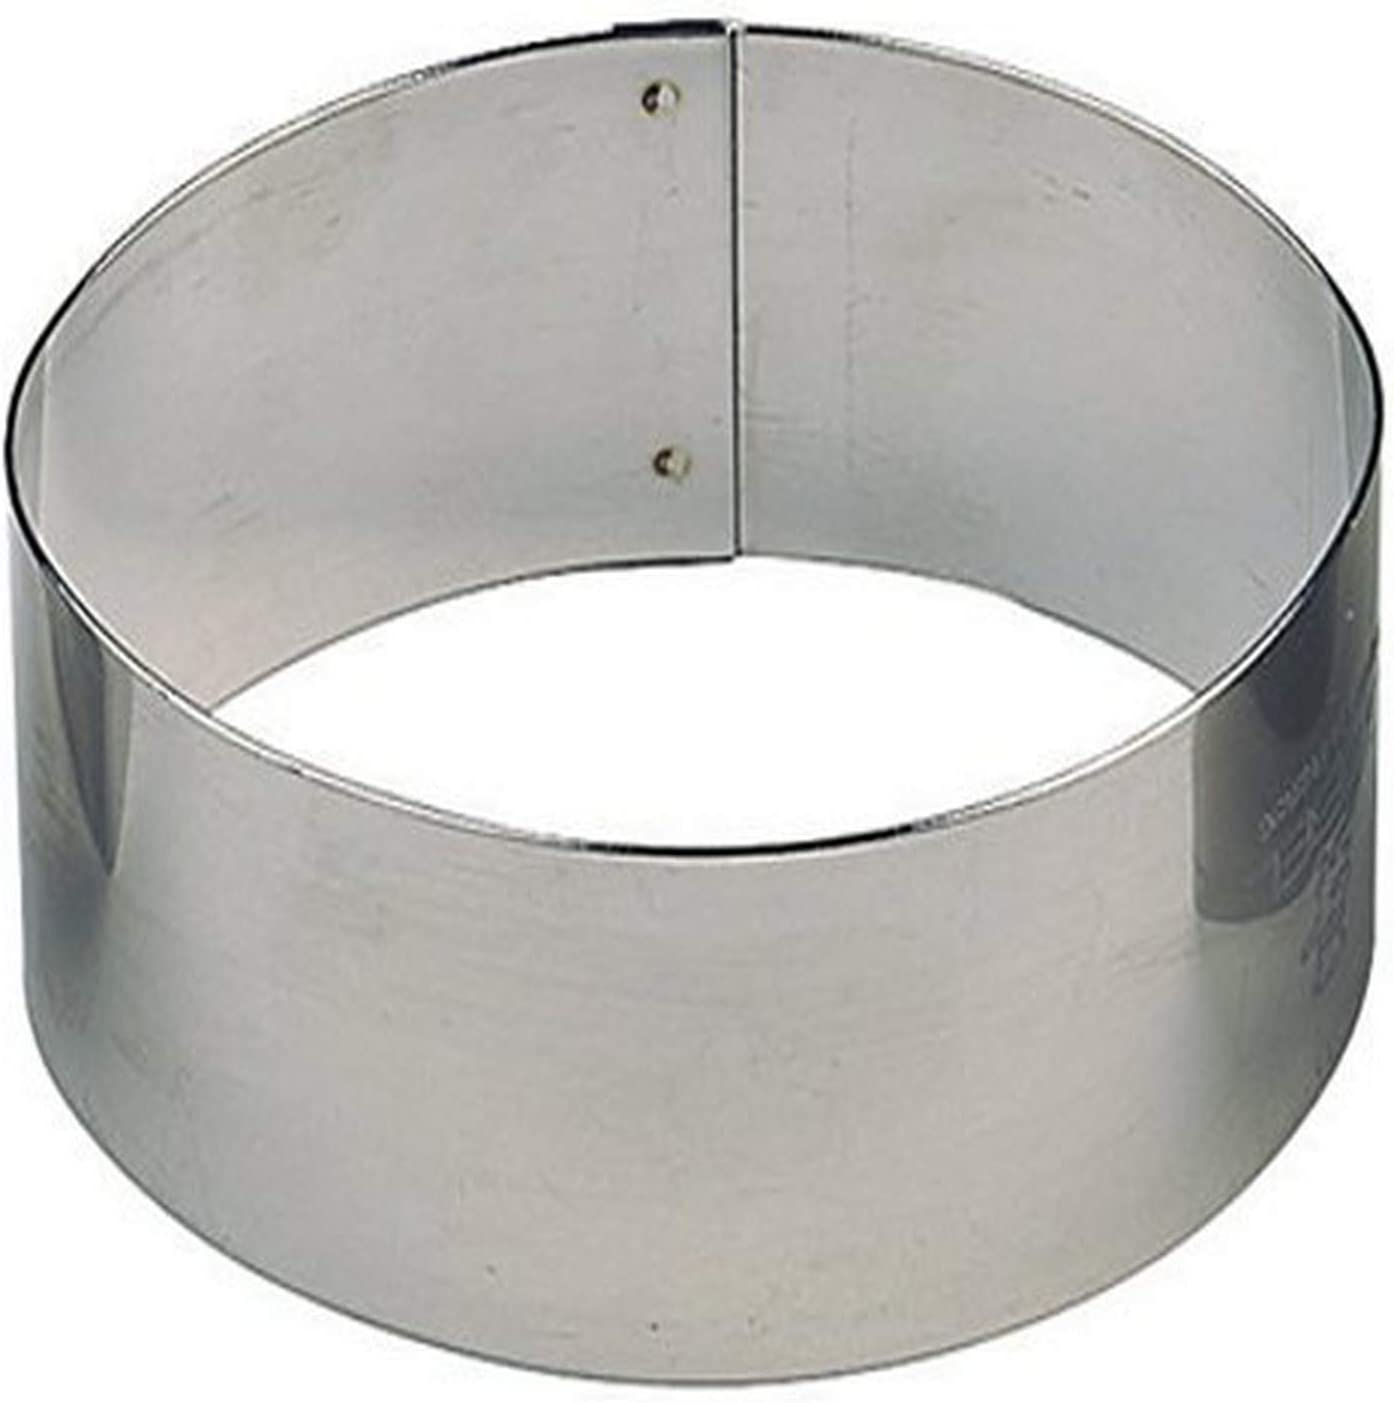 Paderno World Cuisine Pack of 6 Oval Stainless Steel Pastry Rings 3-Inch by 1-7//8-Inch